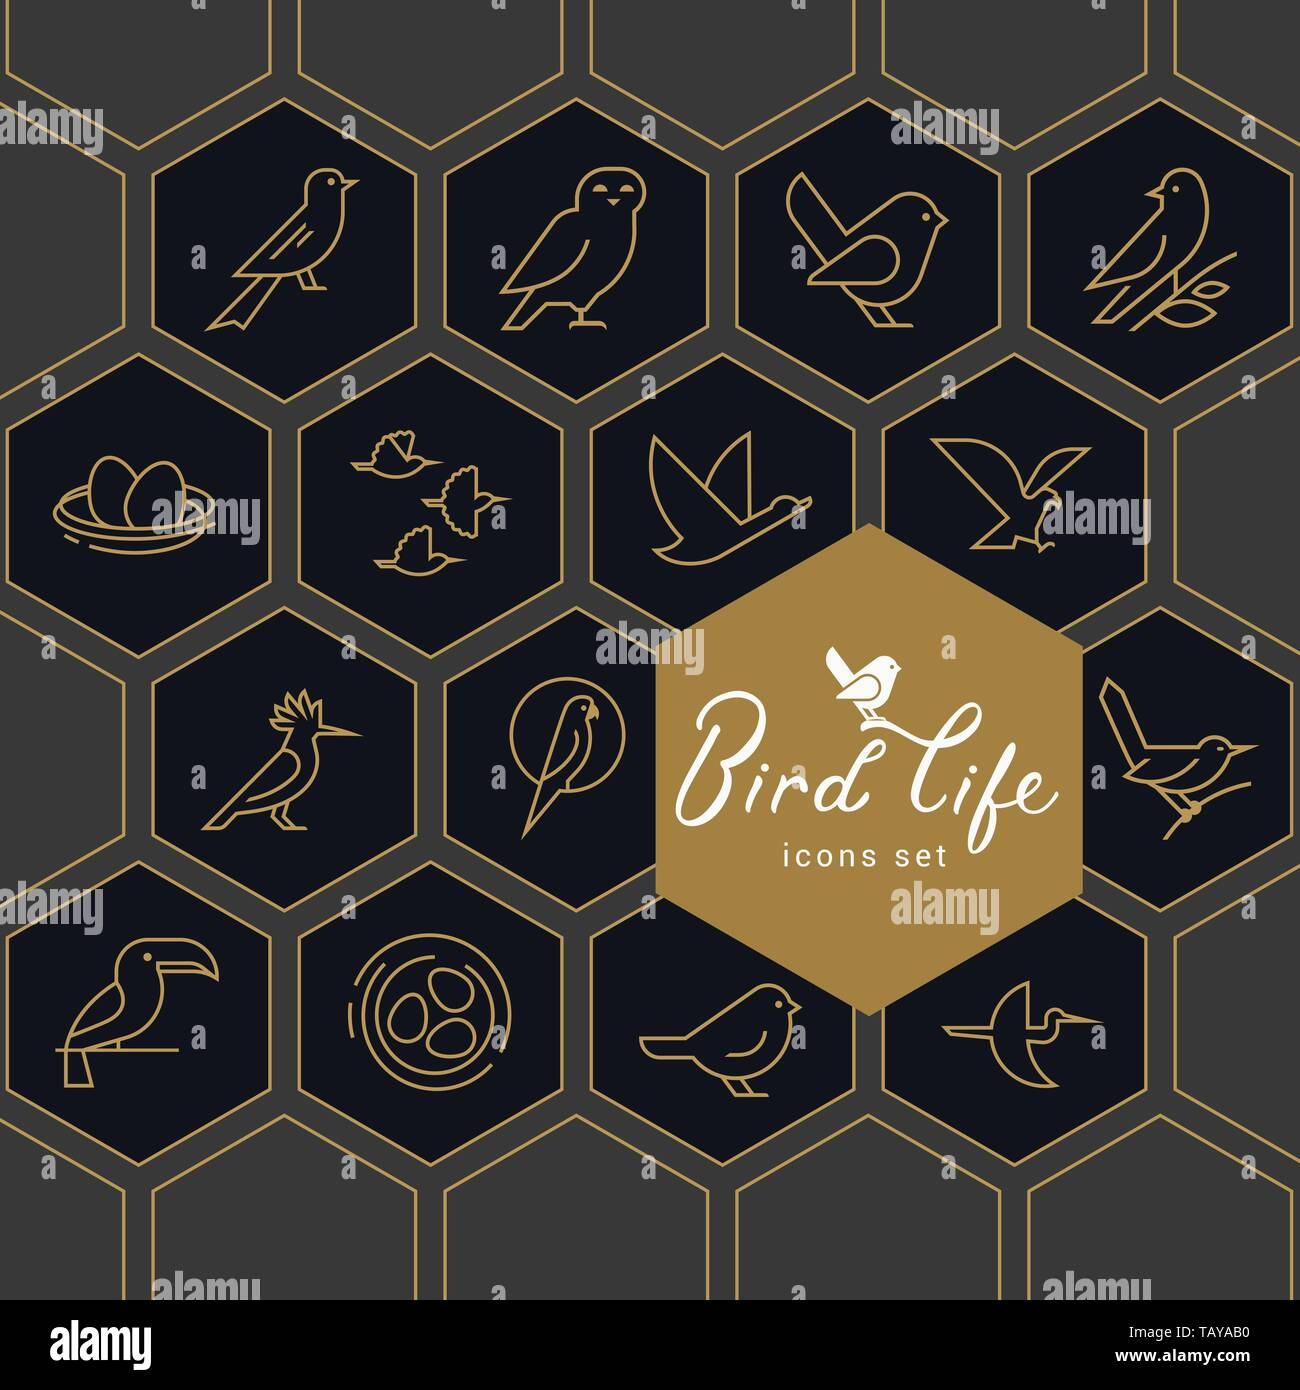 Vector icon set of icons inscribed in honeycombs on the theme of the wild life of birds. Early birds in a linear style on a dark background. Design co Stock Vector